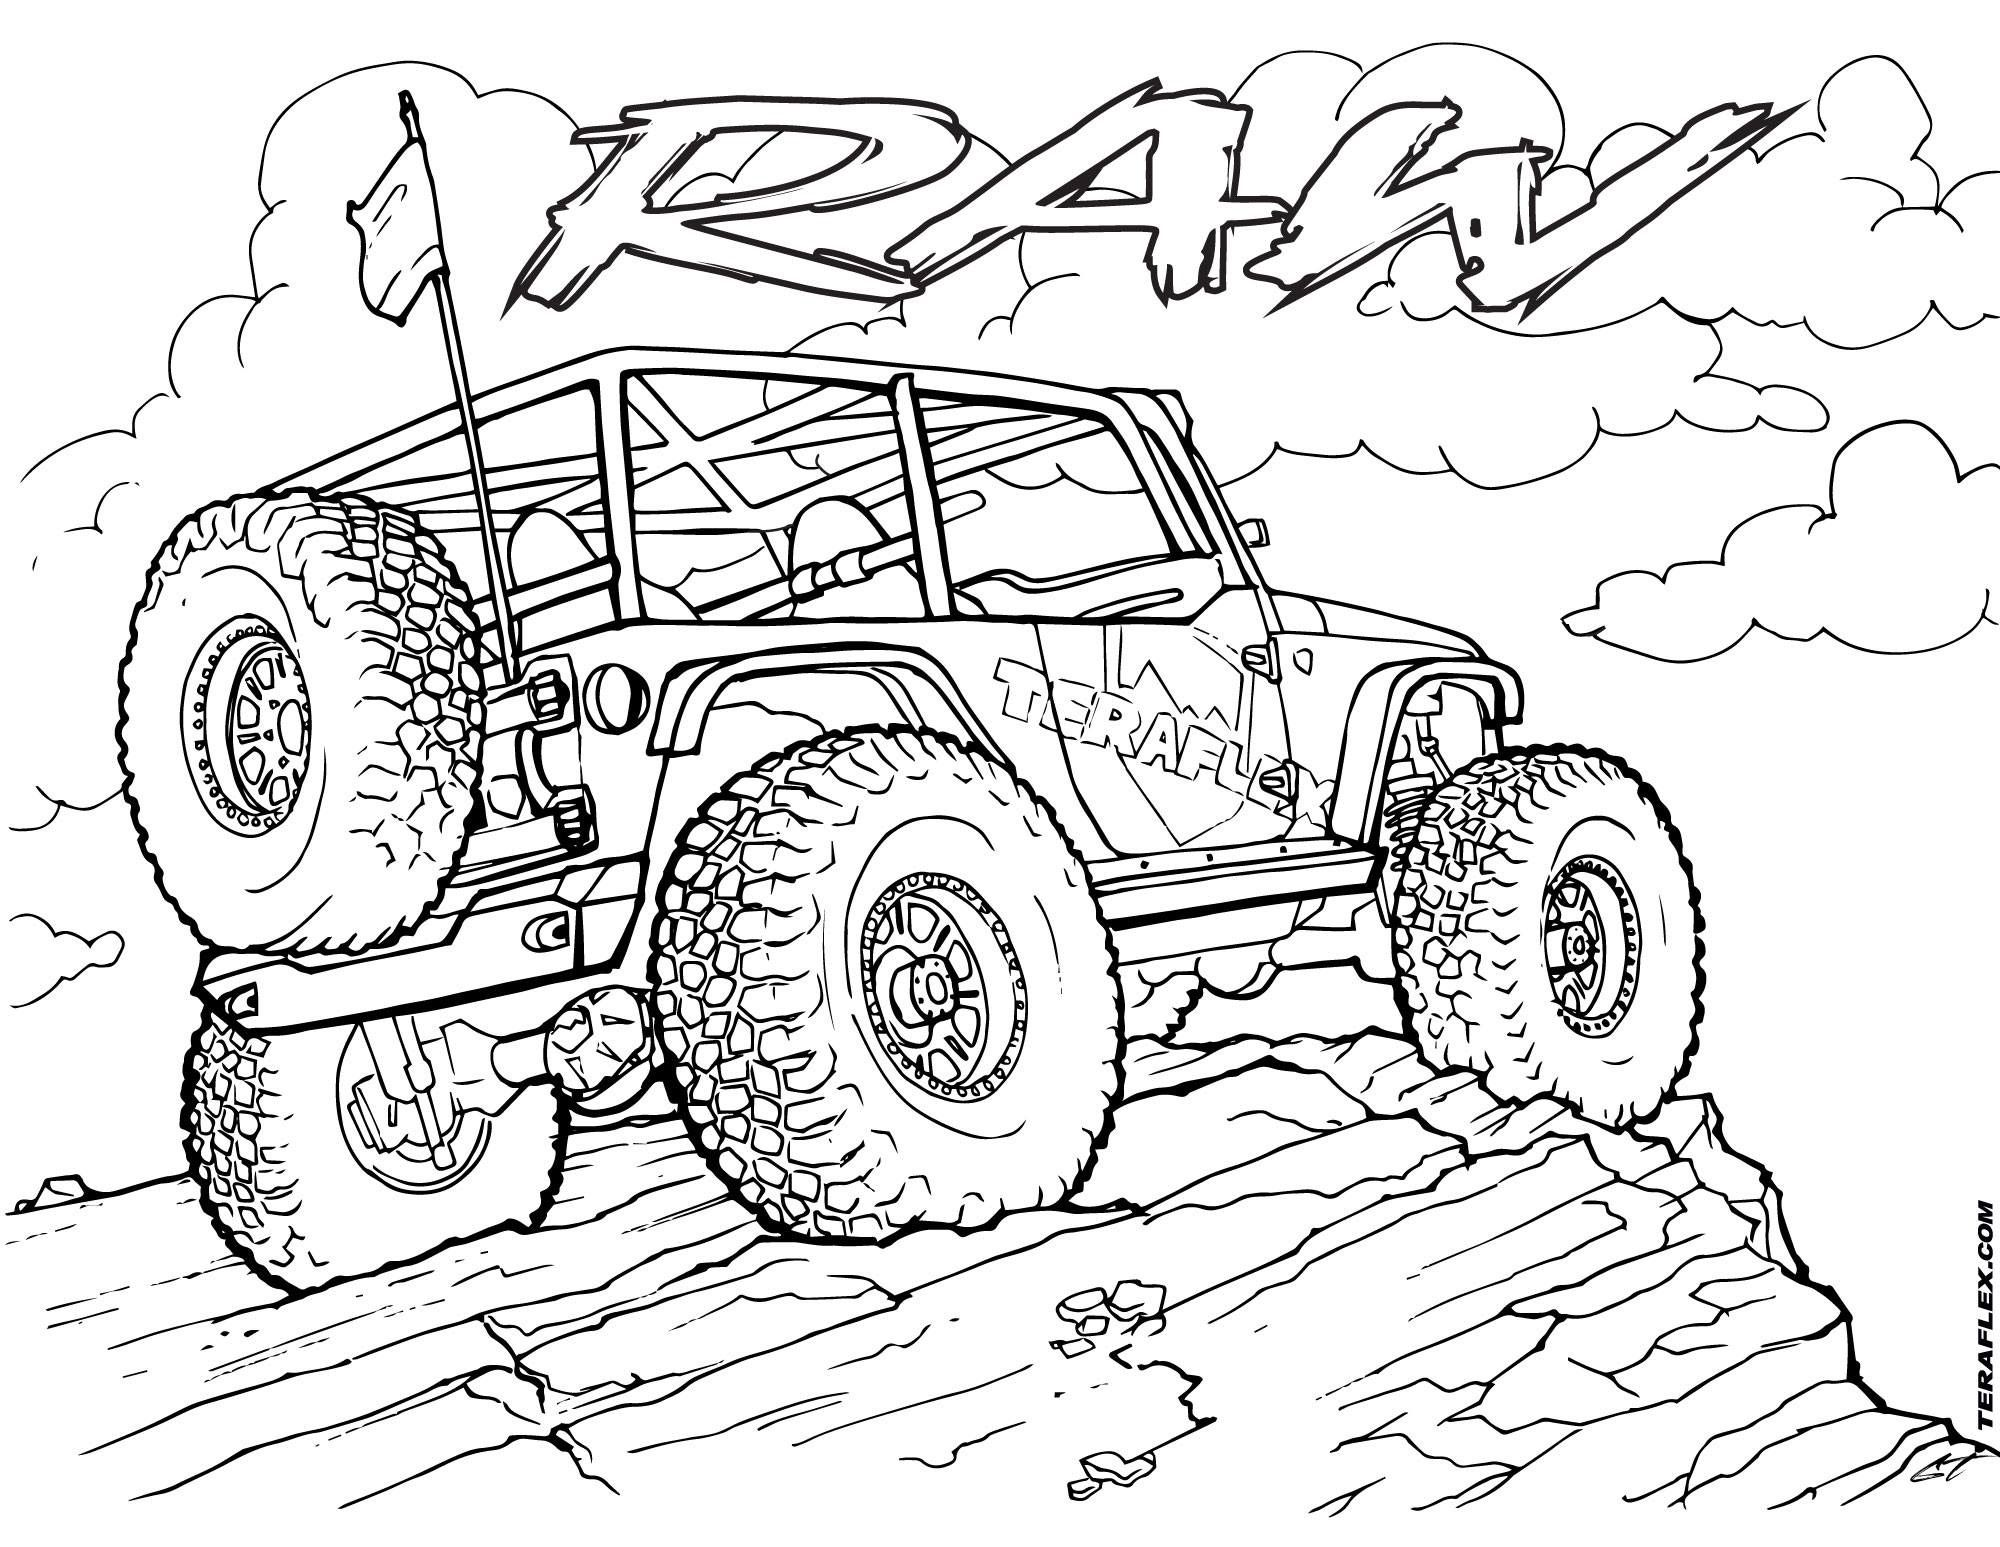 off road truck coloring pages jeep off road coloring page off road car car coloring coloring pages road truck off